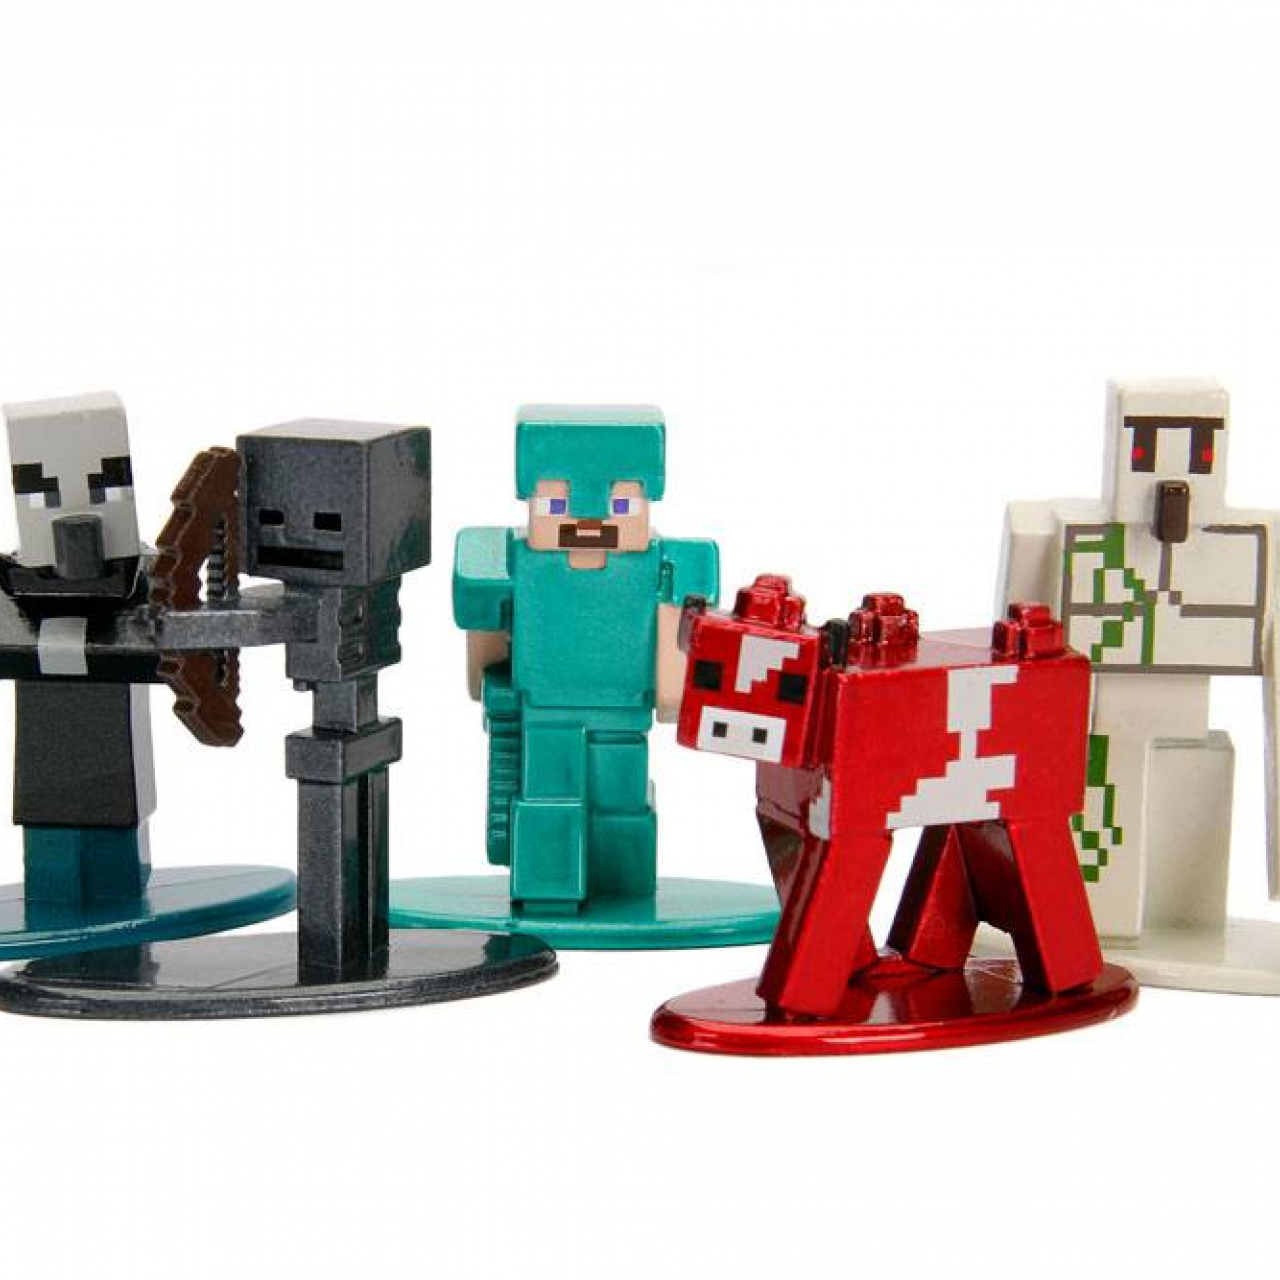 Minecraft Nano Metalfigs Diecast Mini Figures 5-Pack Wave 2 4 cm